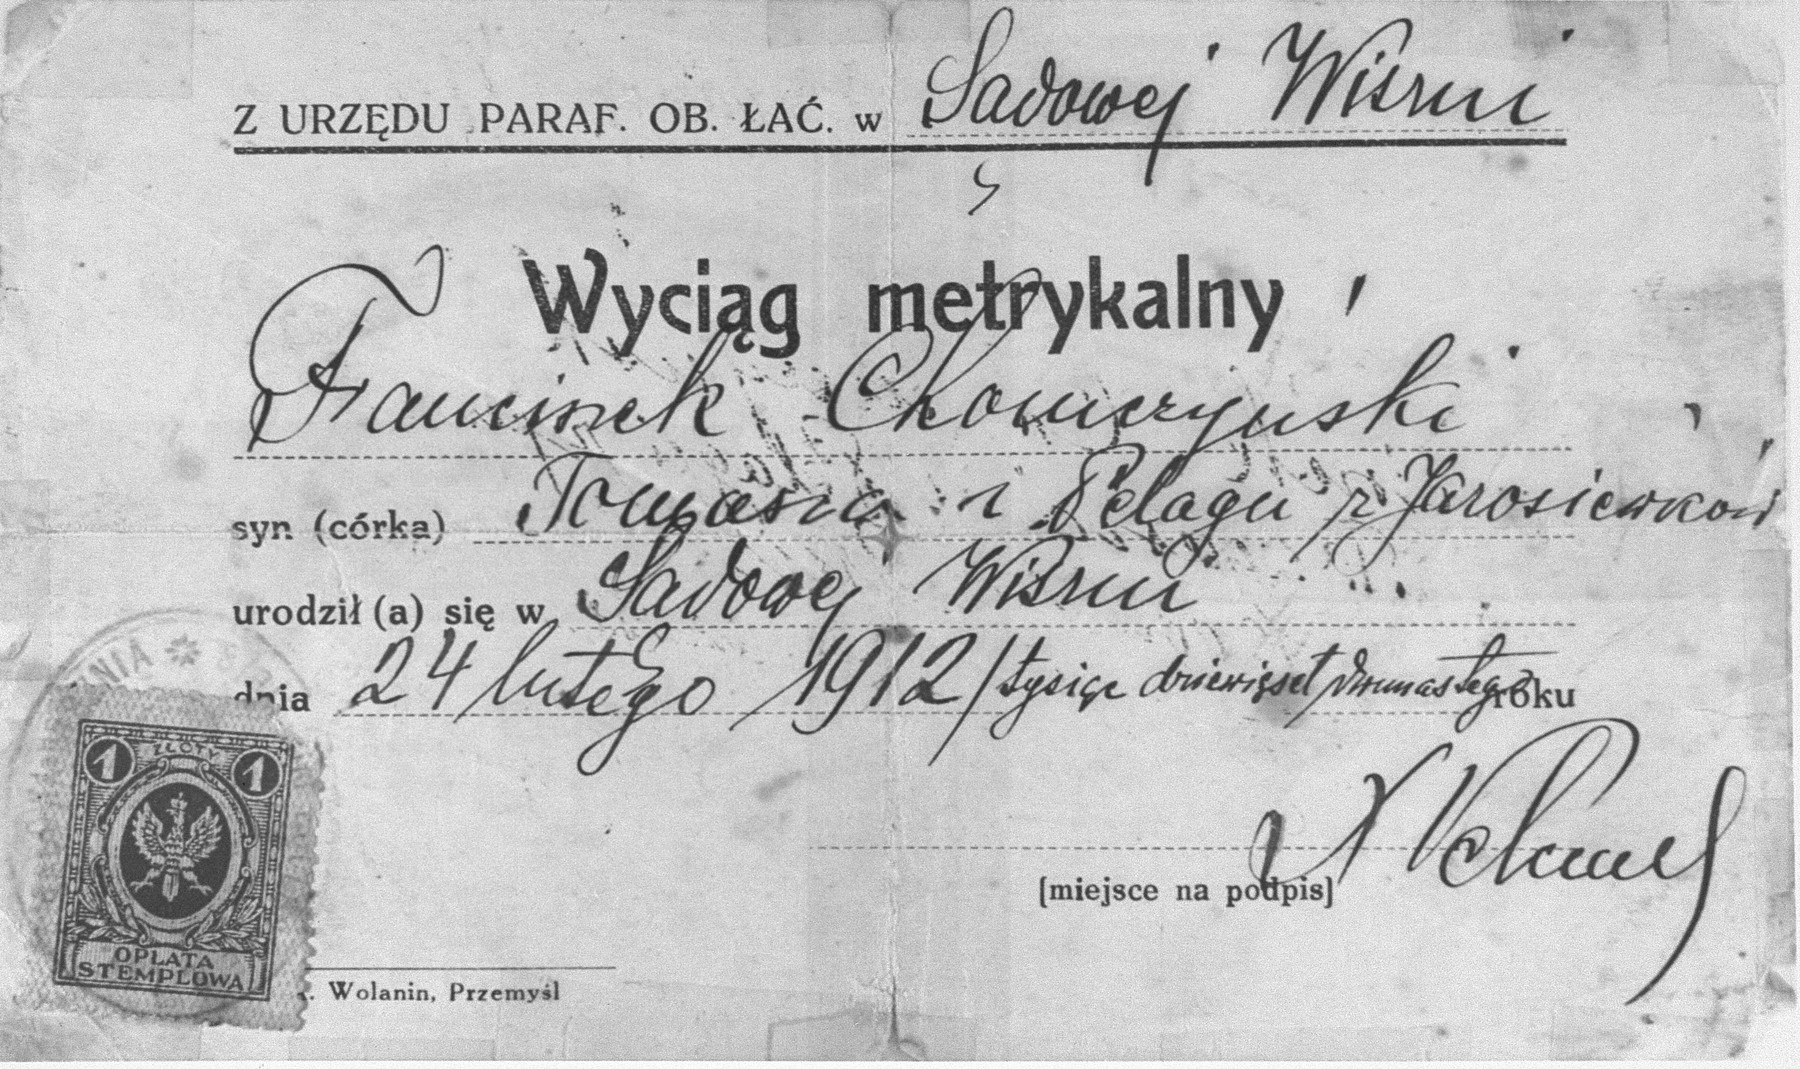 False birth certificate used by Mieczysalw Morgenstern, a Jew from Lodz, to obtain Aryan papers during the German occupation of Poland.  The birth certificate was issued by the Roman Catholic parish in Sadowa Wisznia to Franciszek Chomczynski, son of Tomasz and Pelagia nee Jarosiewicz, born in Sadowa Wisznia on February 24, 1912.